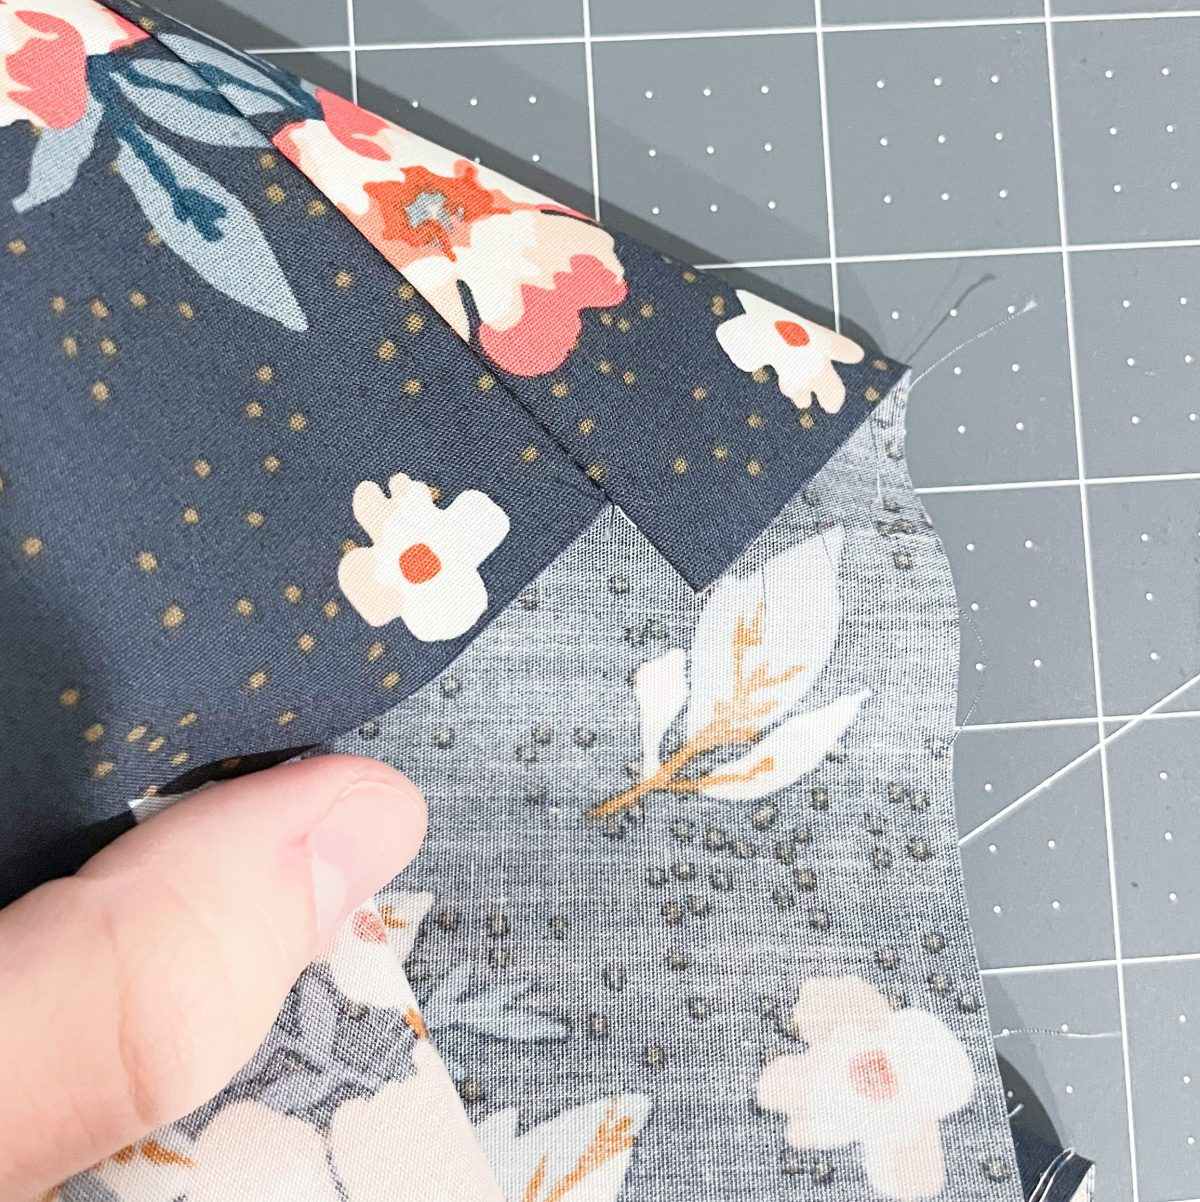 Quilt edges need to be squared and evened.